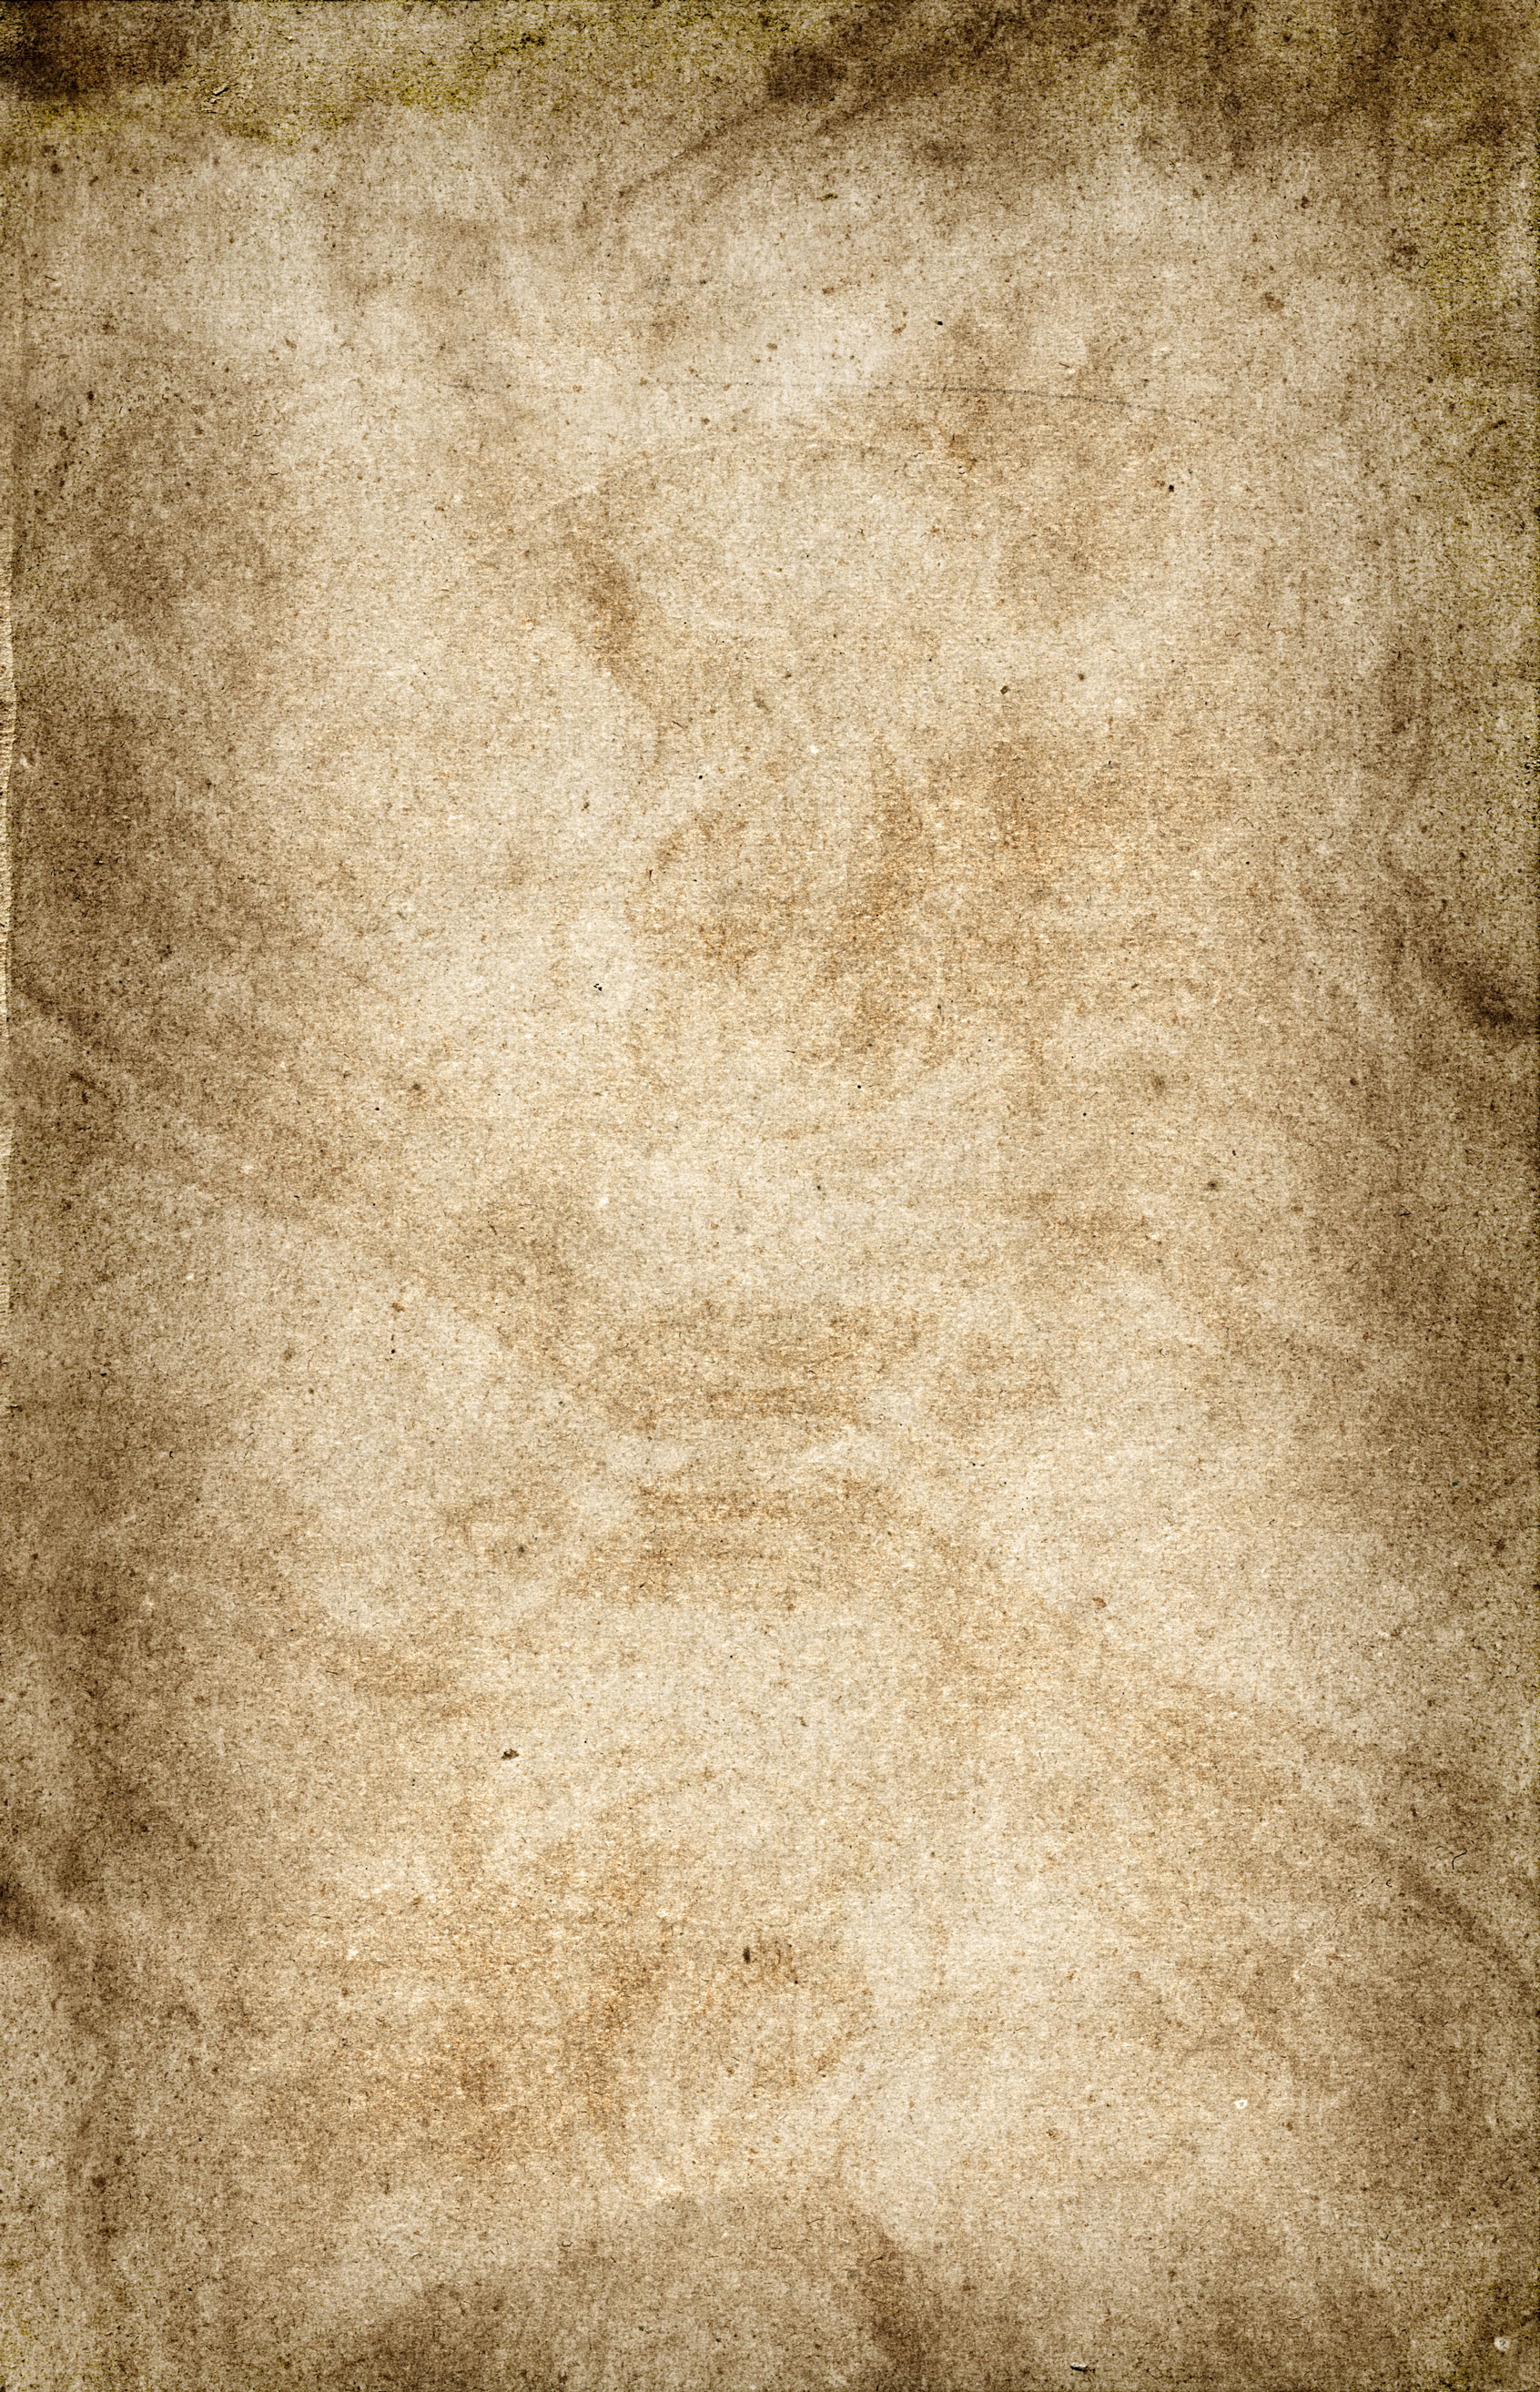 Texture paper, texture, download background, background